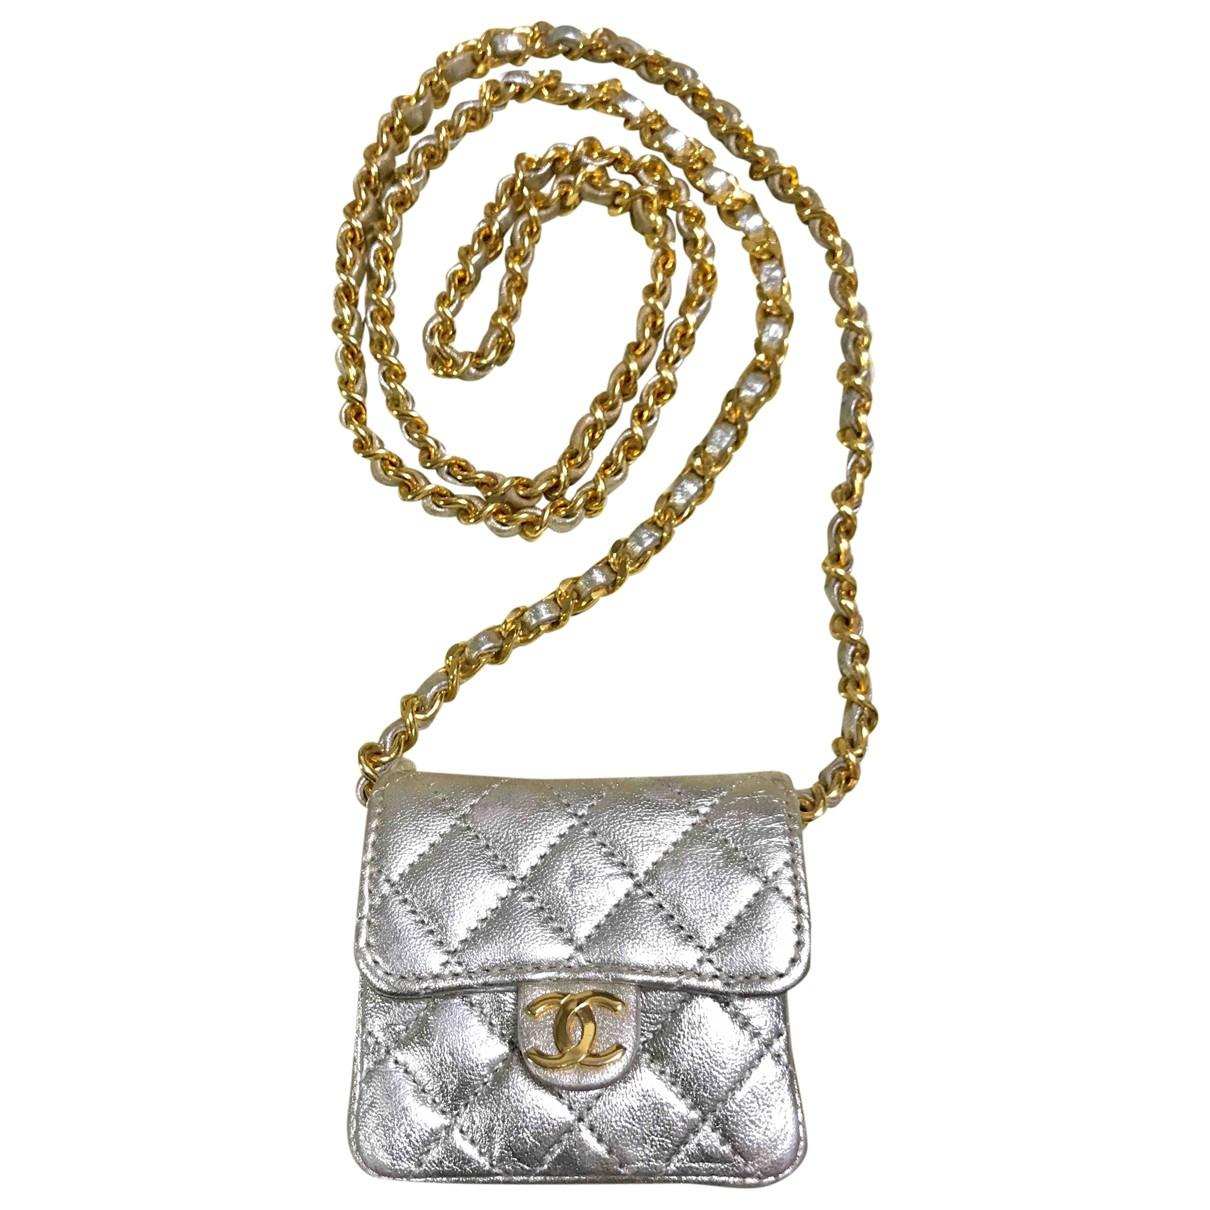 Lyst chanel vintage gold leather handbag in metallic jpg 1210x1210 Silver  and gold leather handbags 87bf7f758c7d4